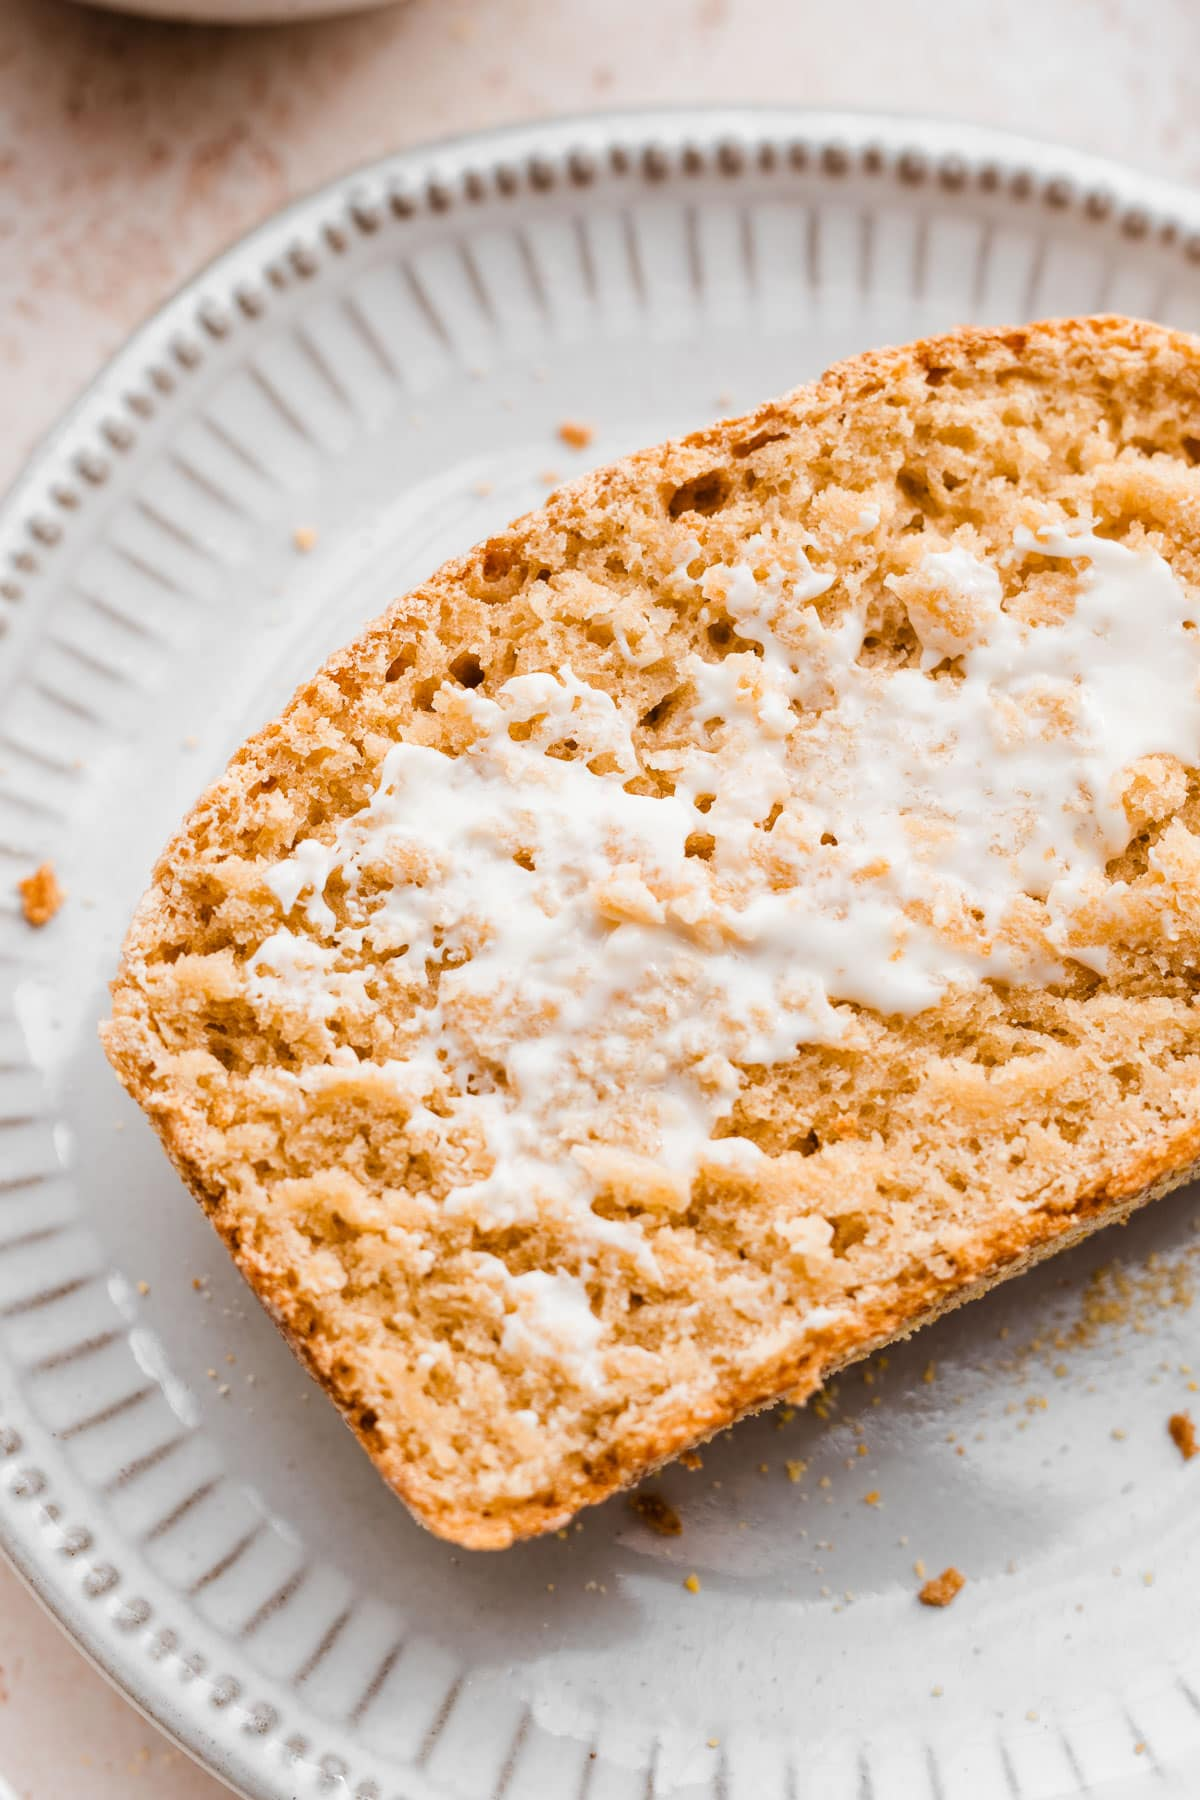 English muffin bread- Tastes just like homemade English muffins, but is so easy to make. No kneading required!